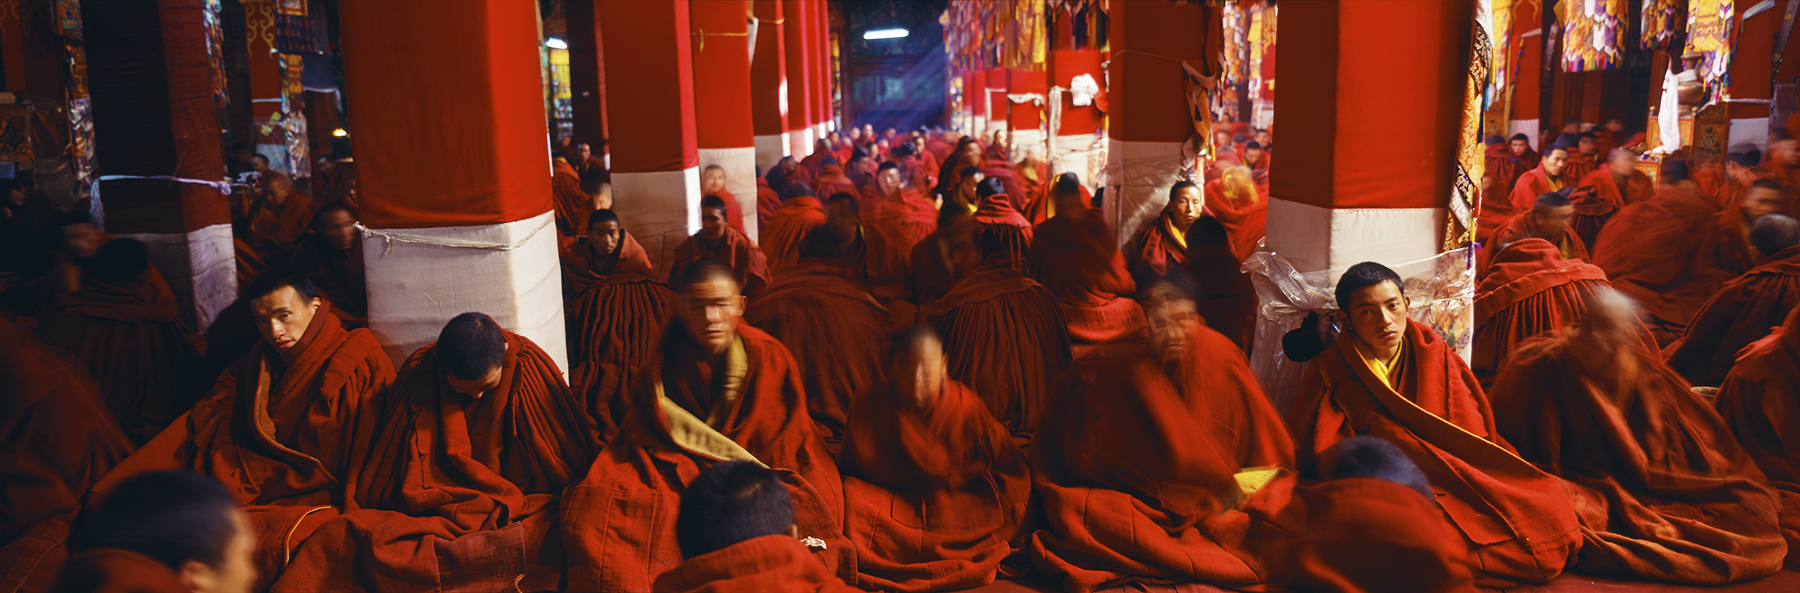 Drepung Monastery, Lhasa, Tibet. A Limited Edition Fine Art Landscape Photograph by Richard Hume